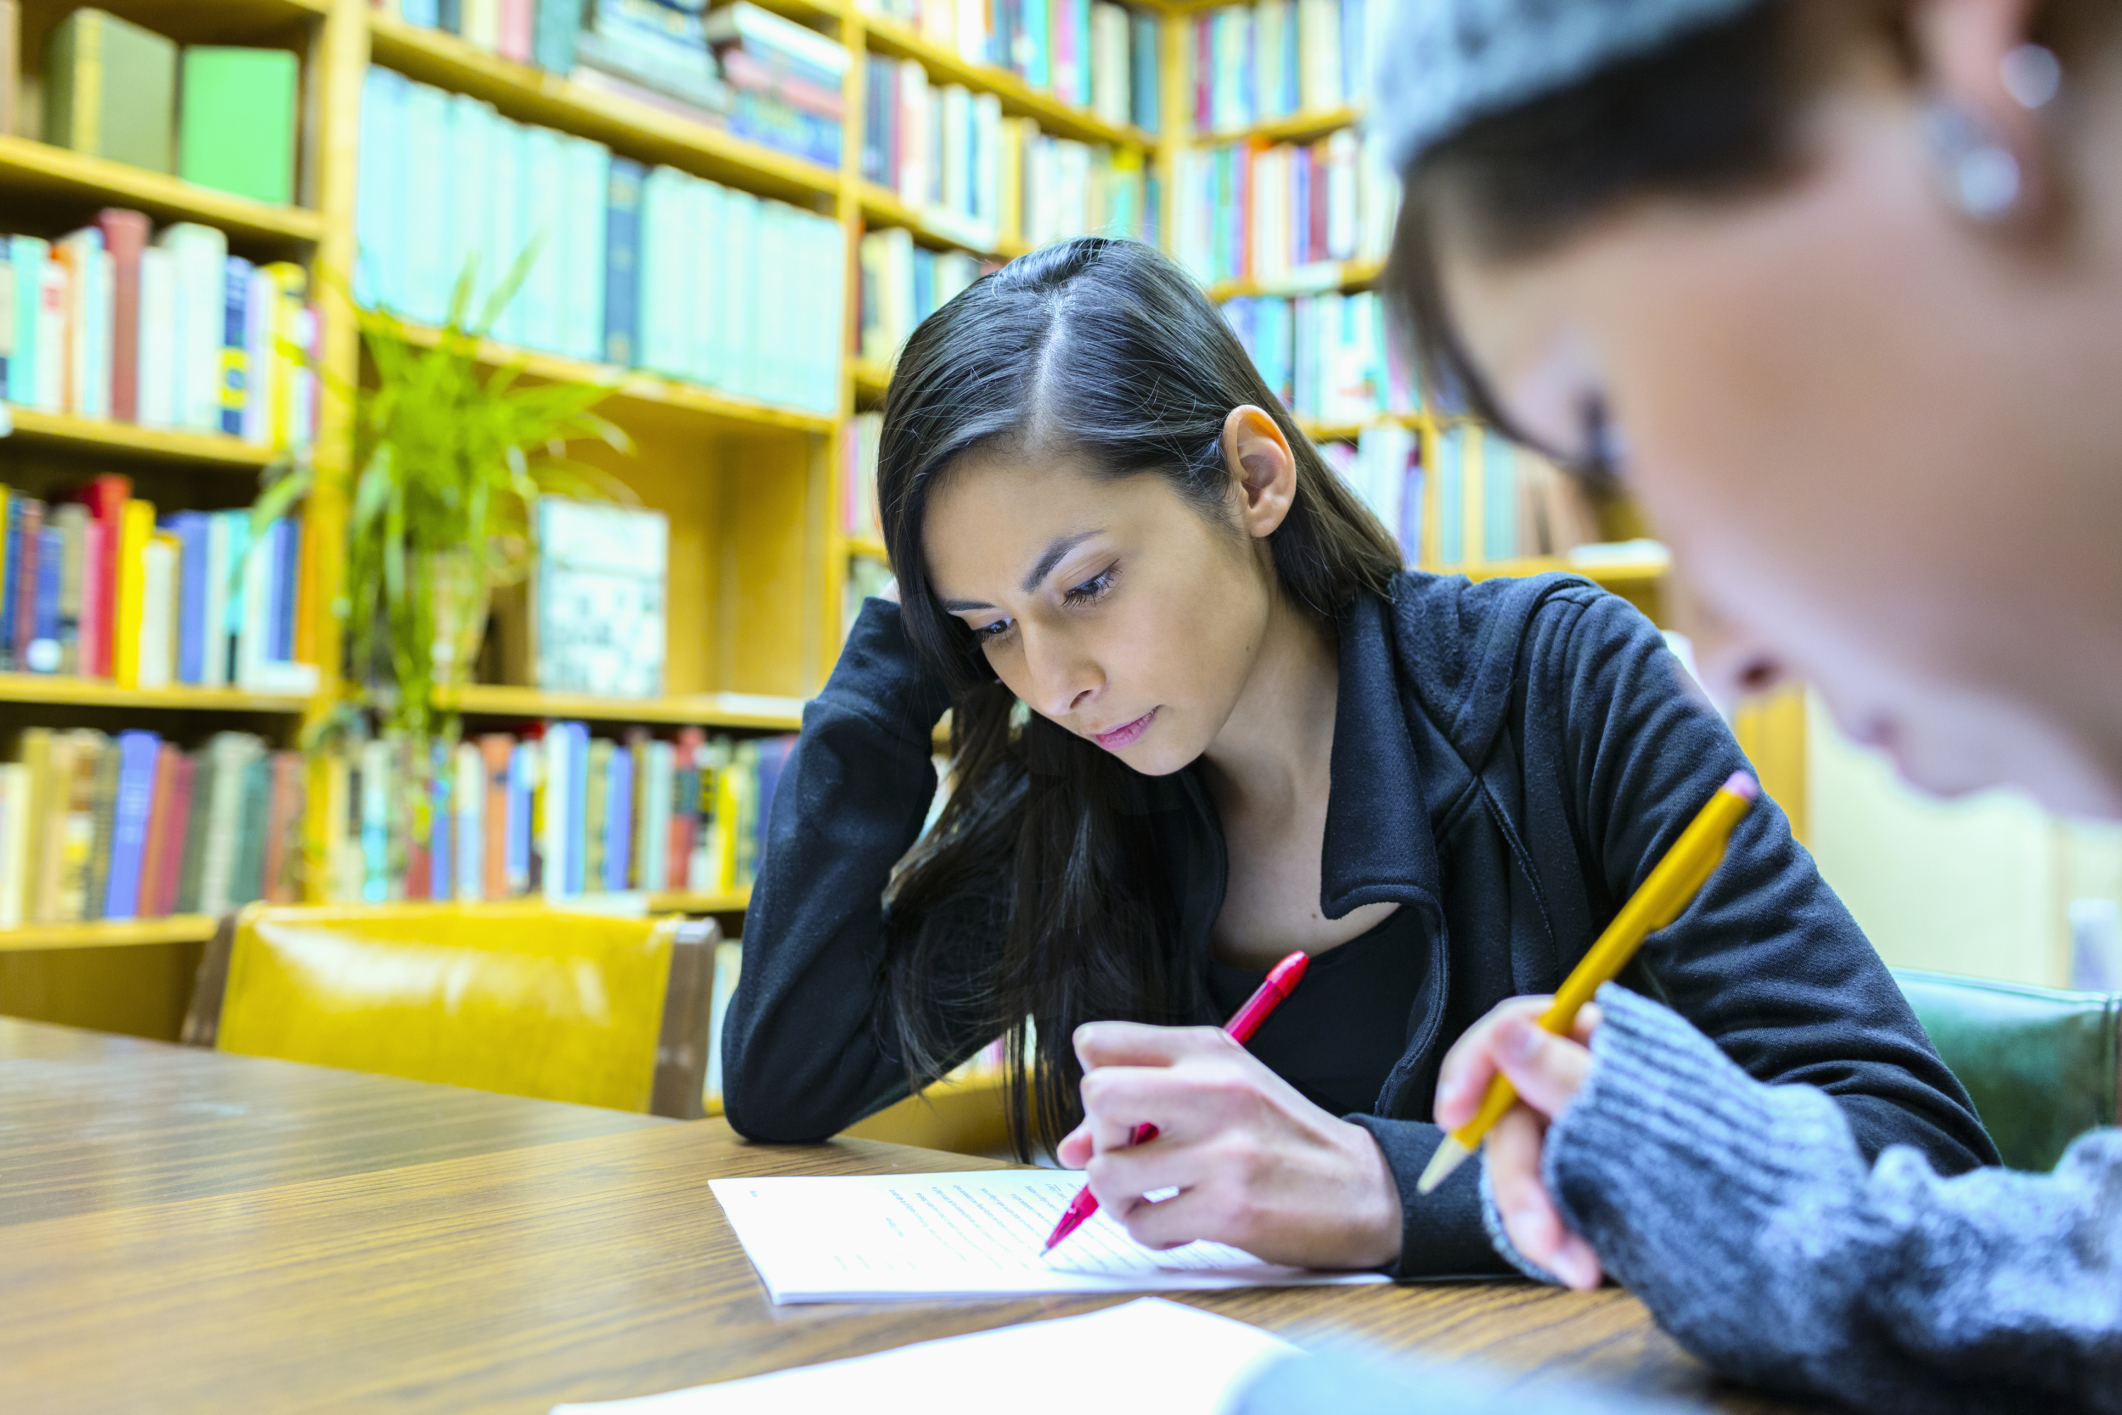 research papers for law students in india Research papers for law students in india click herestudents in india georgia get course work on advertising for me purchase college.